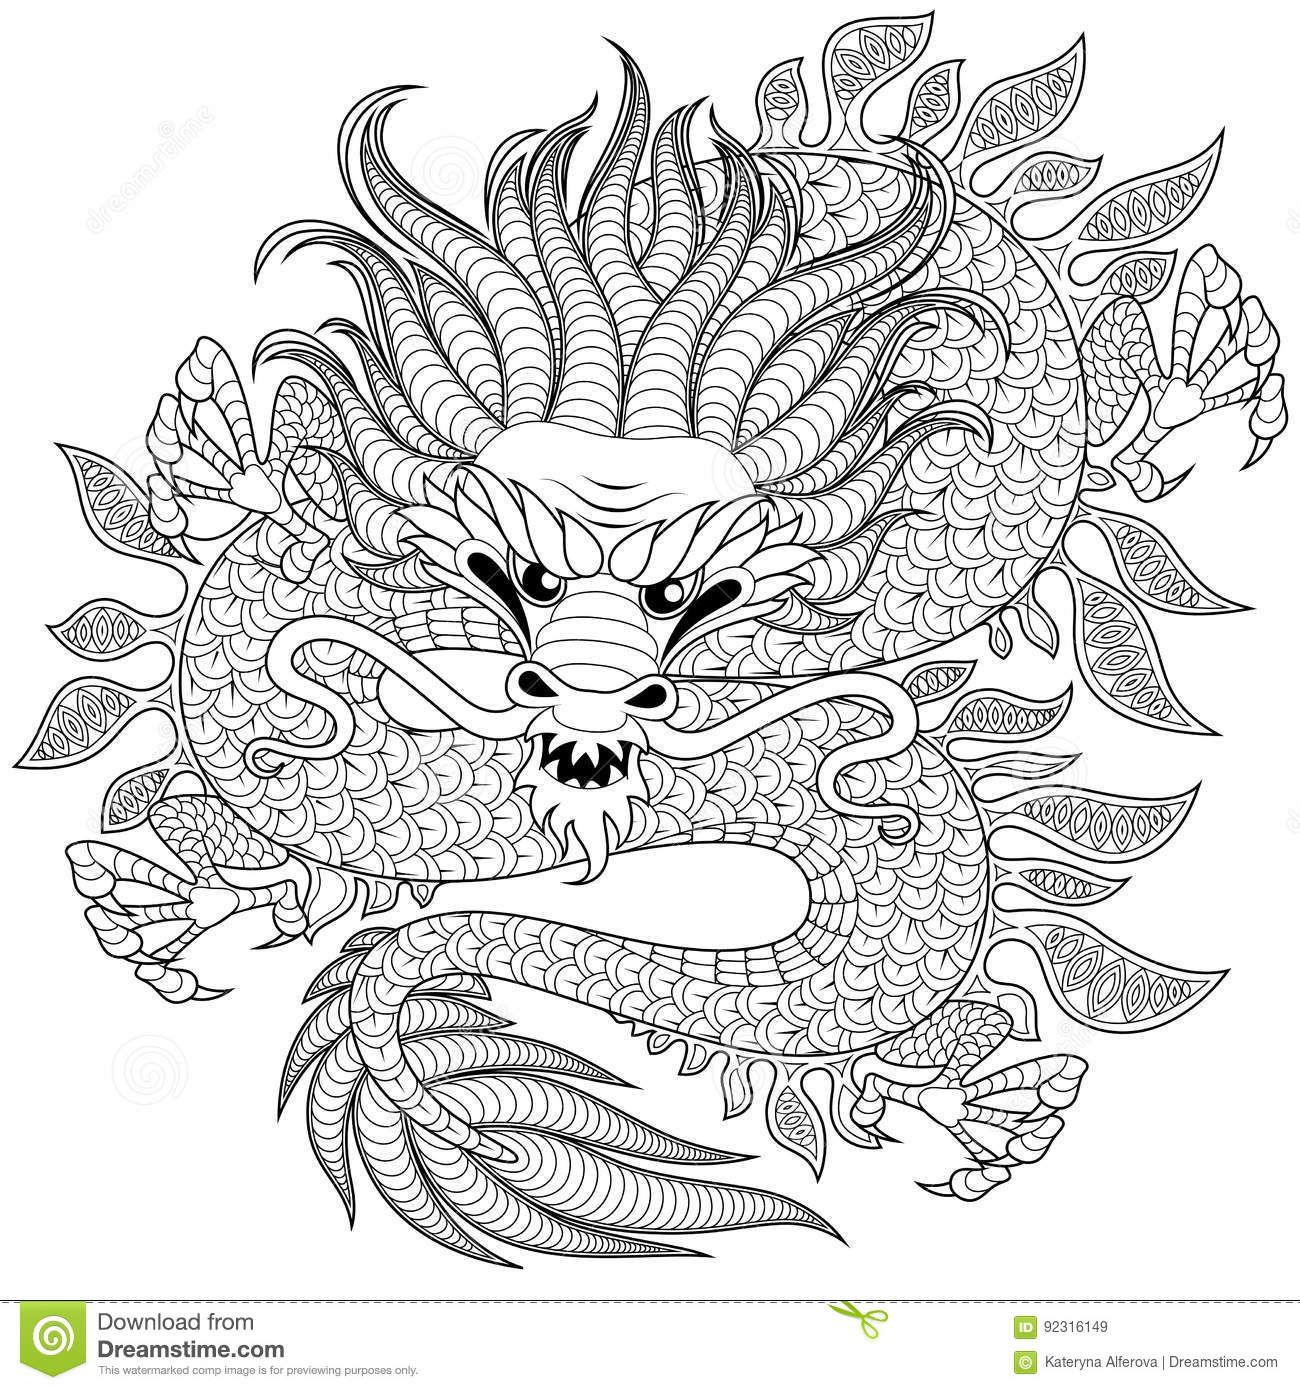 Pin de Hannelie Pienaar en Colouring Pages | Pinterest | Dragones ...